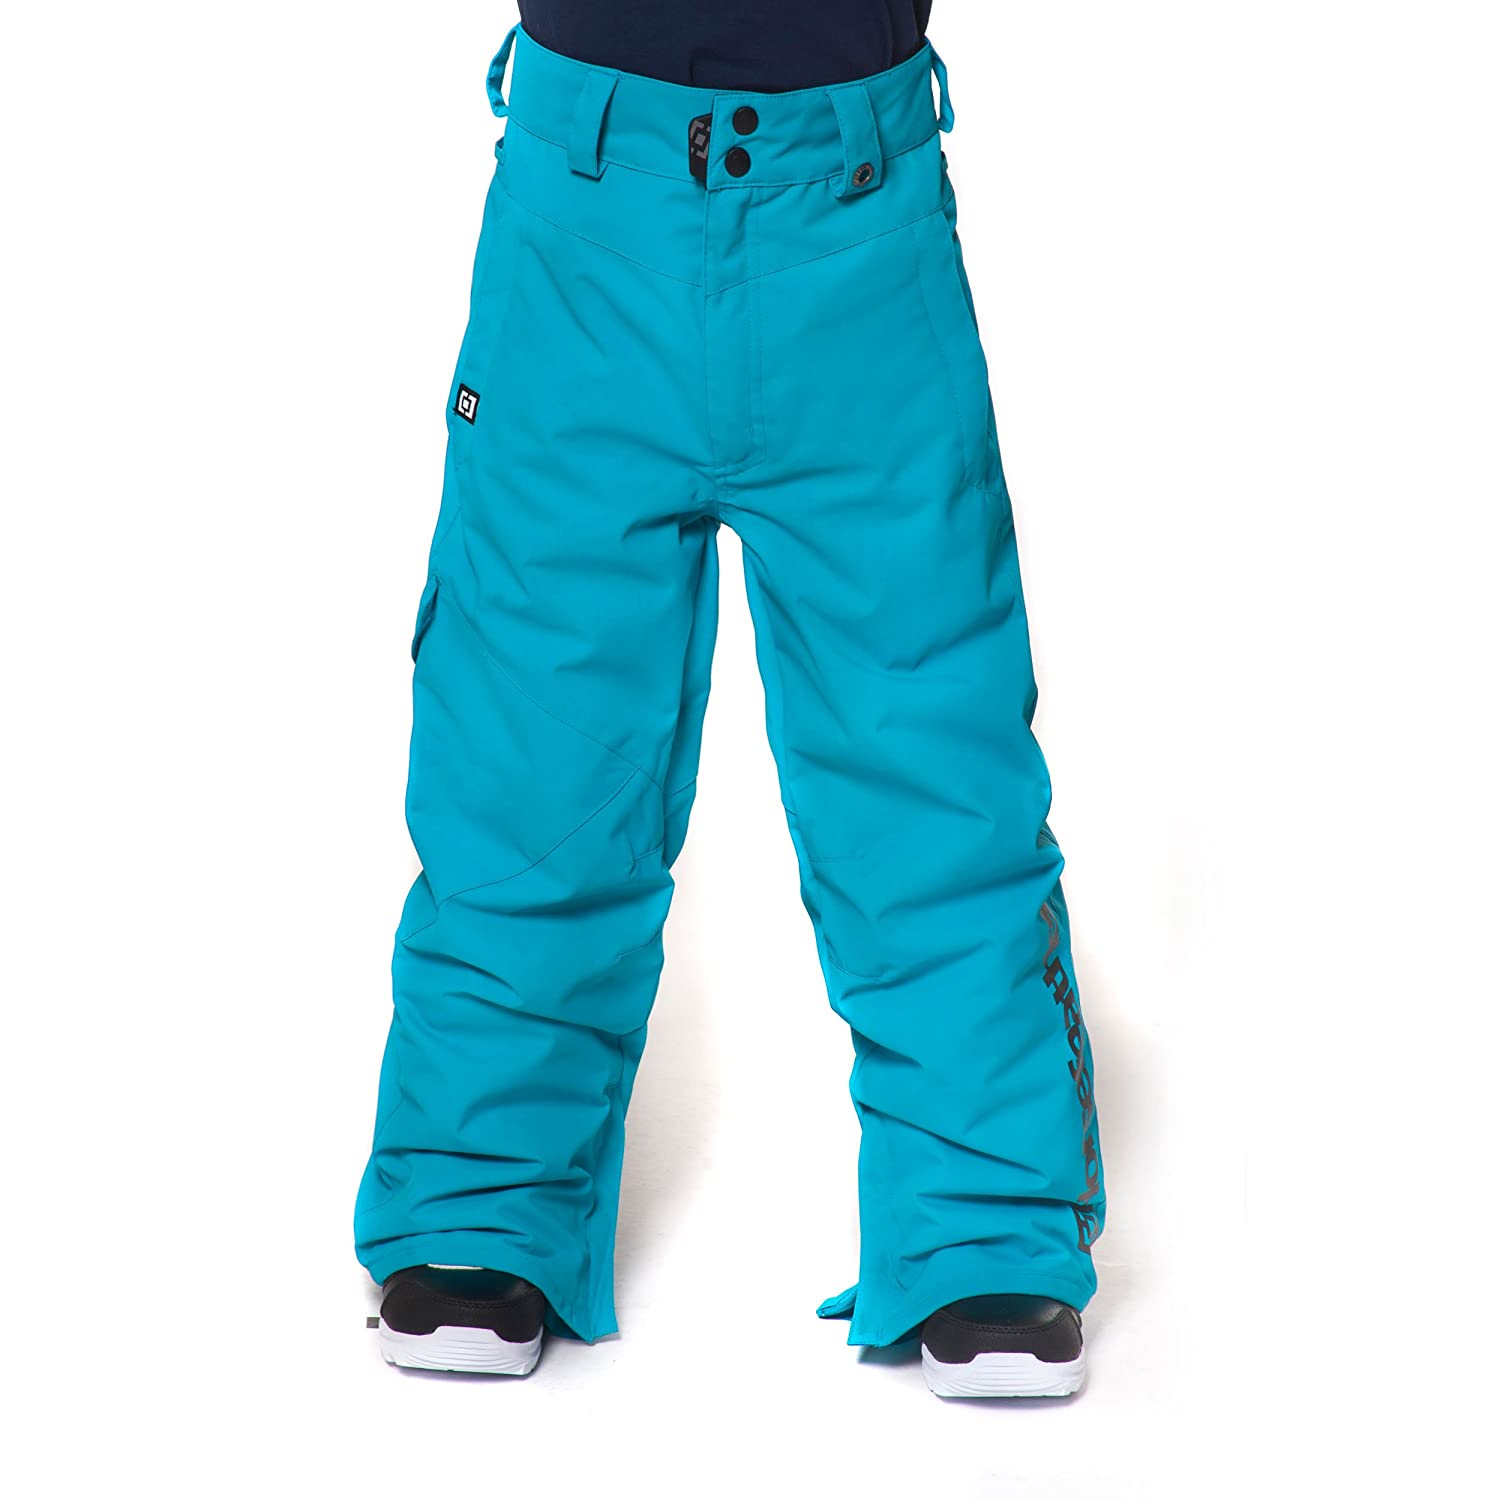 Horsefeathers Tempest Kids Pants Children's Trousers, Children's, Hosen Tempest Kids Pants Children's OK030